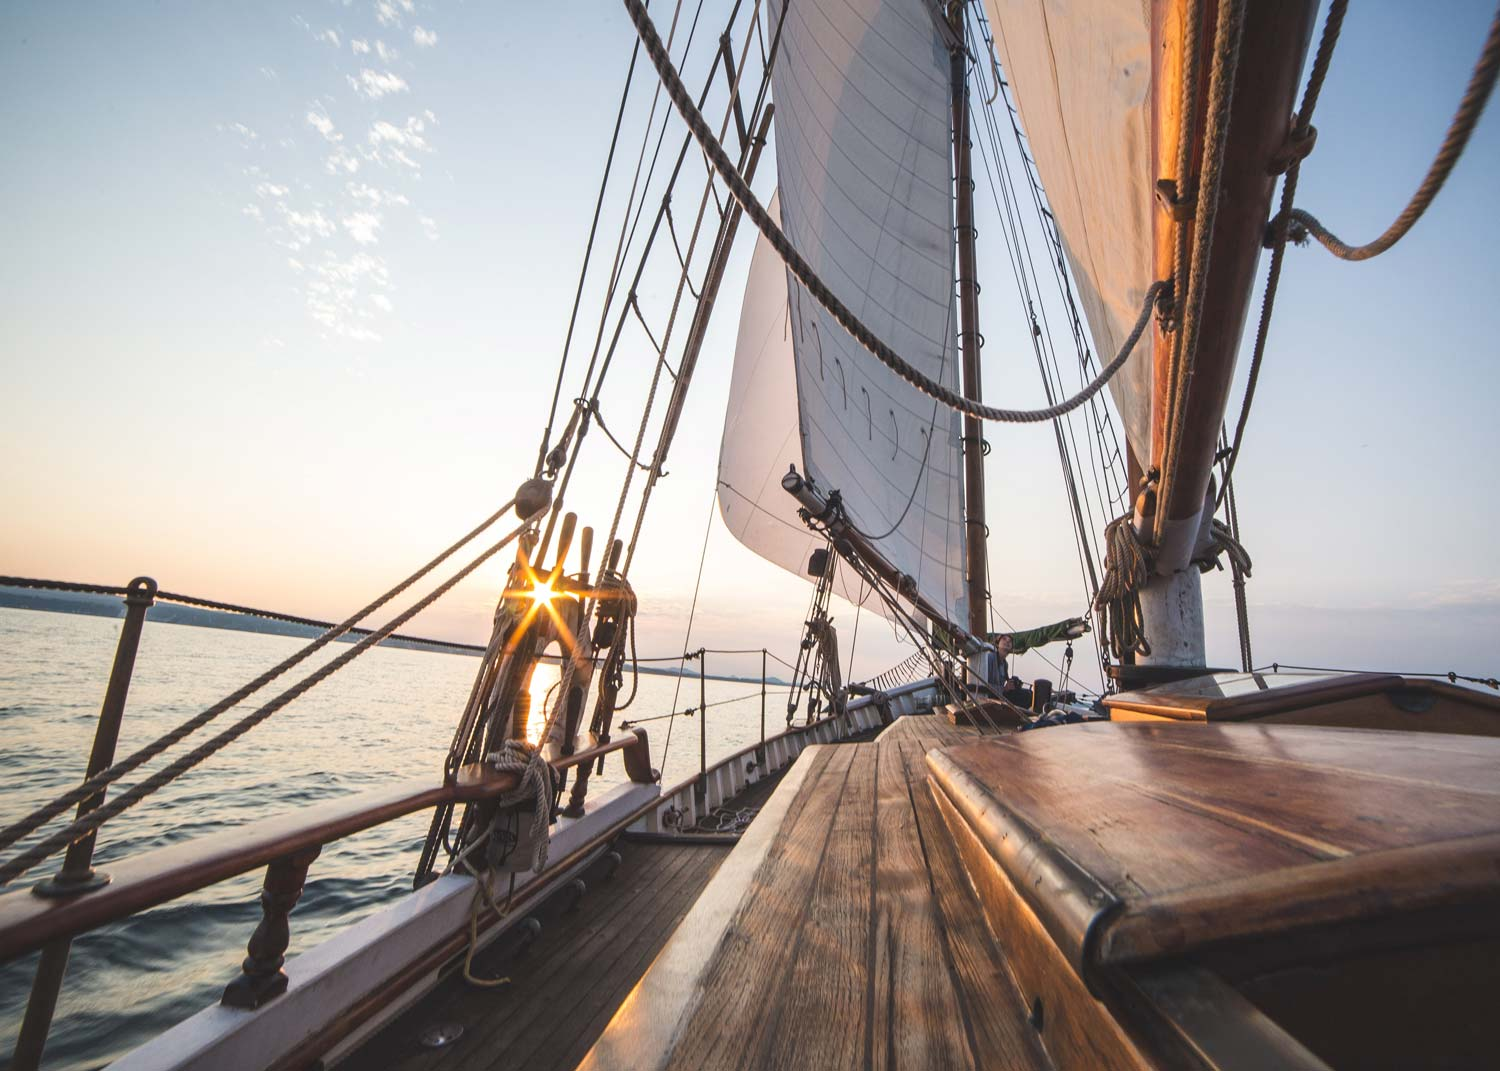 a close up of a sail boat on the ocean